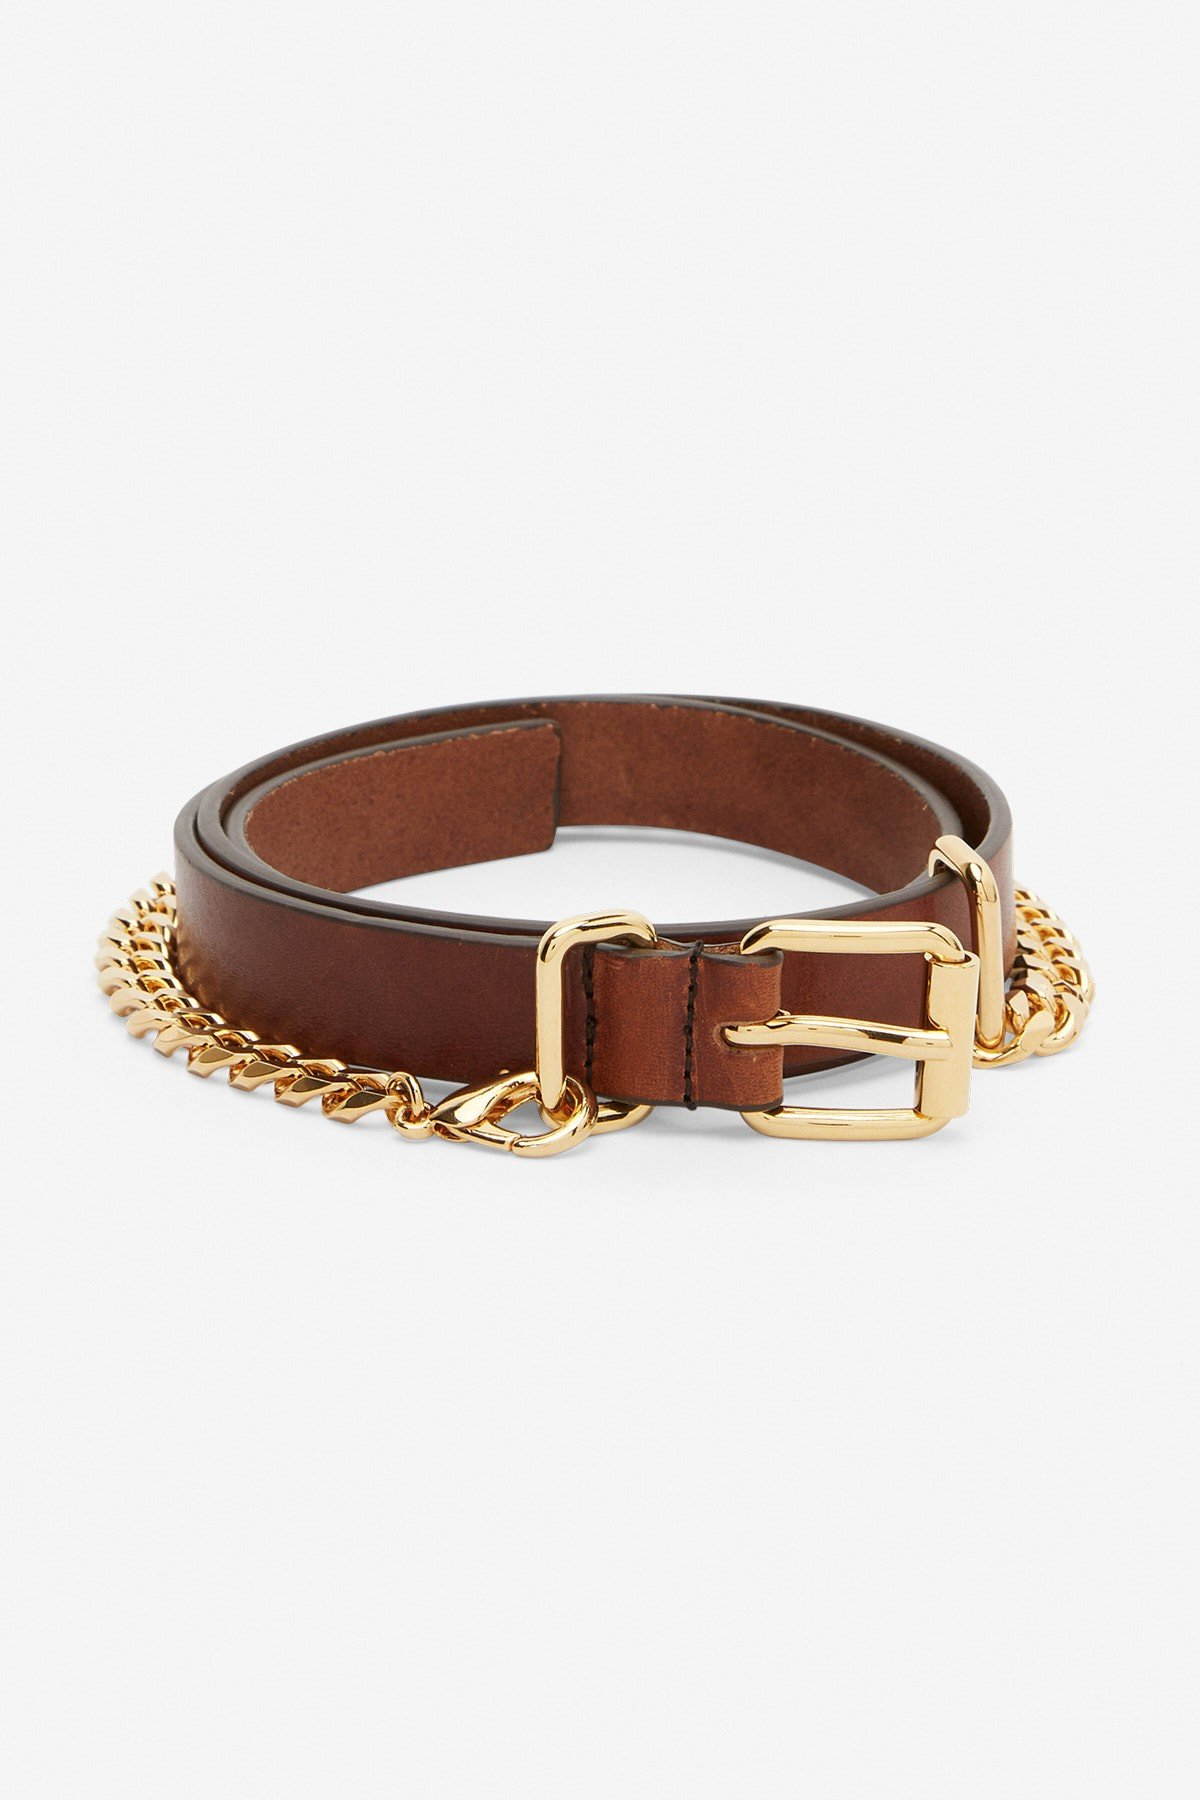 Thin leather belt with chain